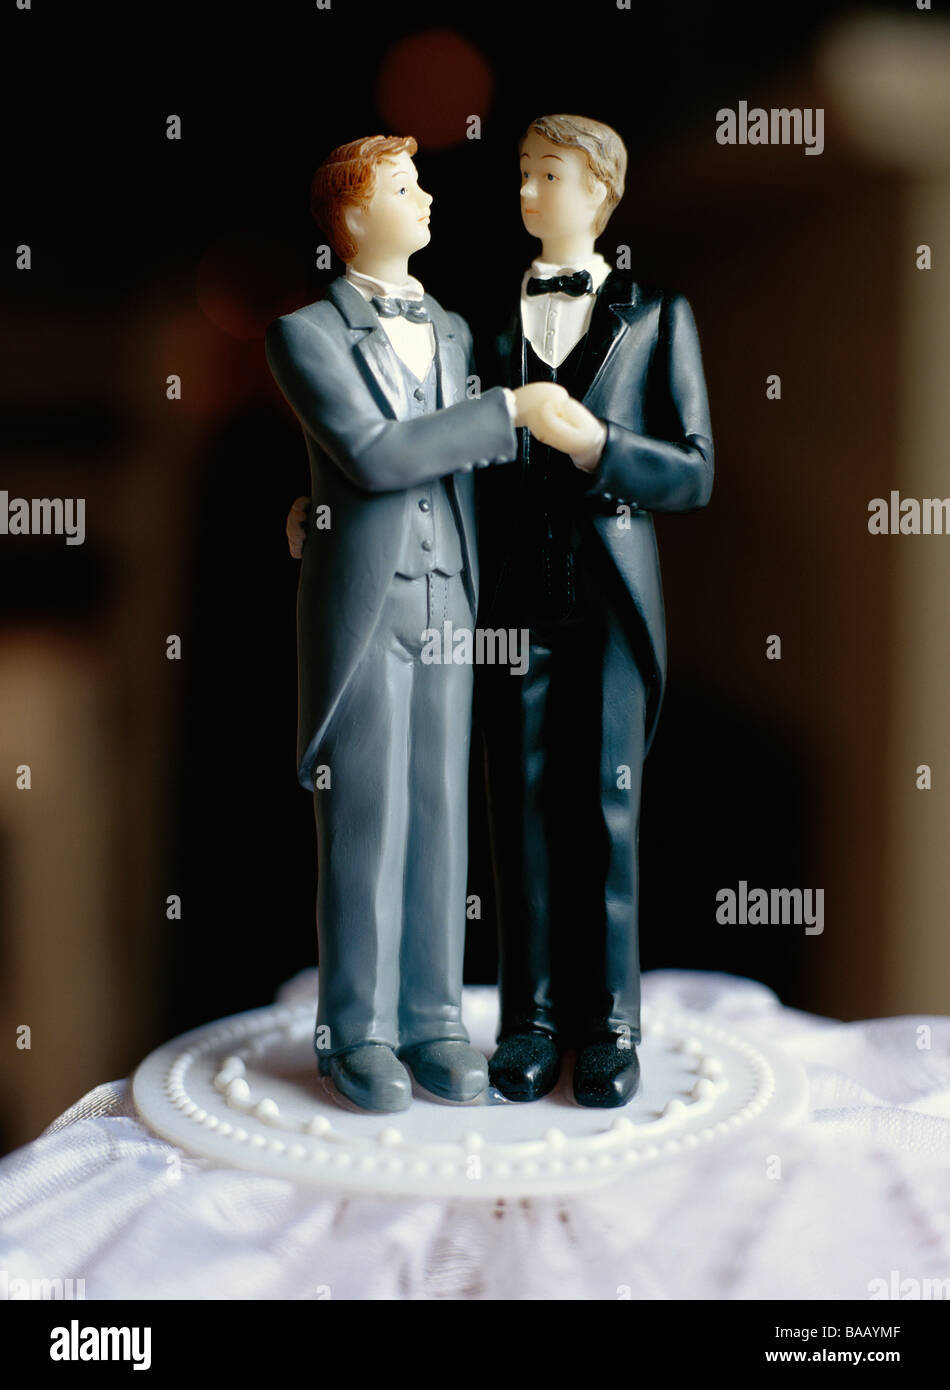 A gay bridal couple on a cake, Sweden. Stock Foto